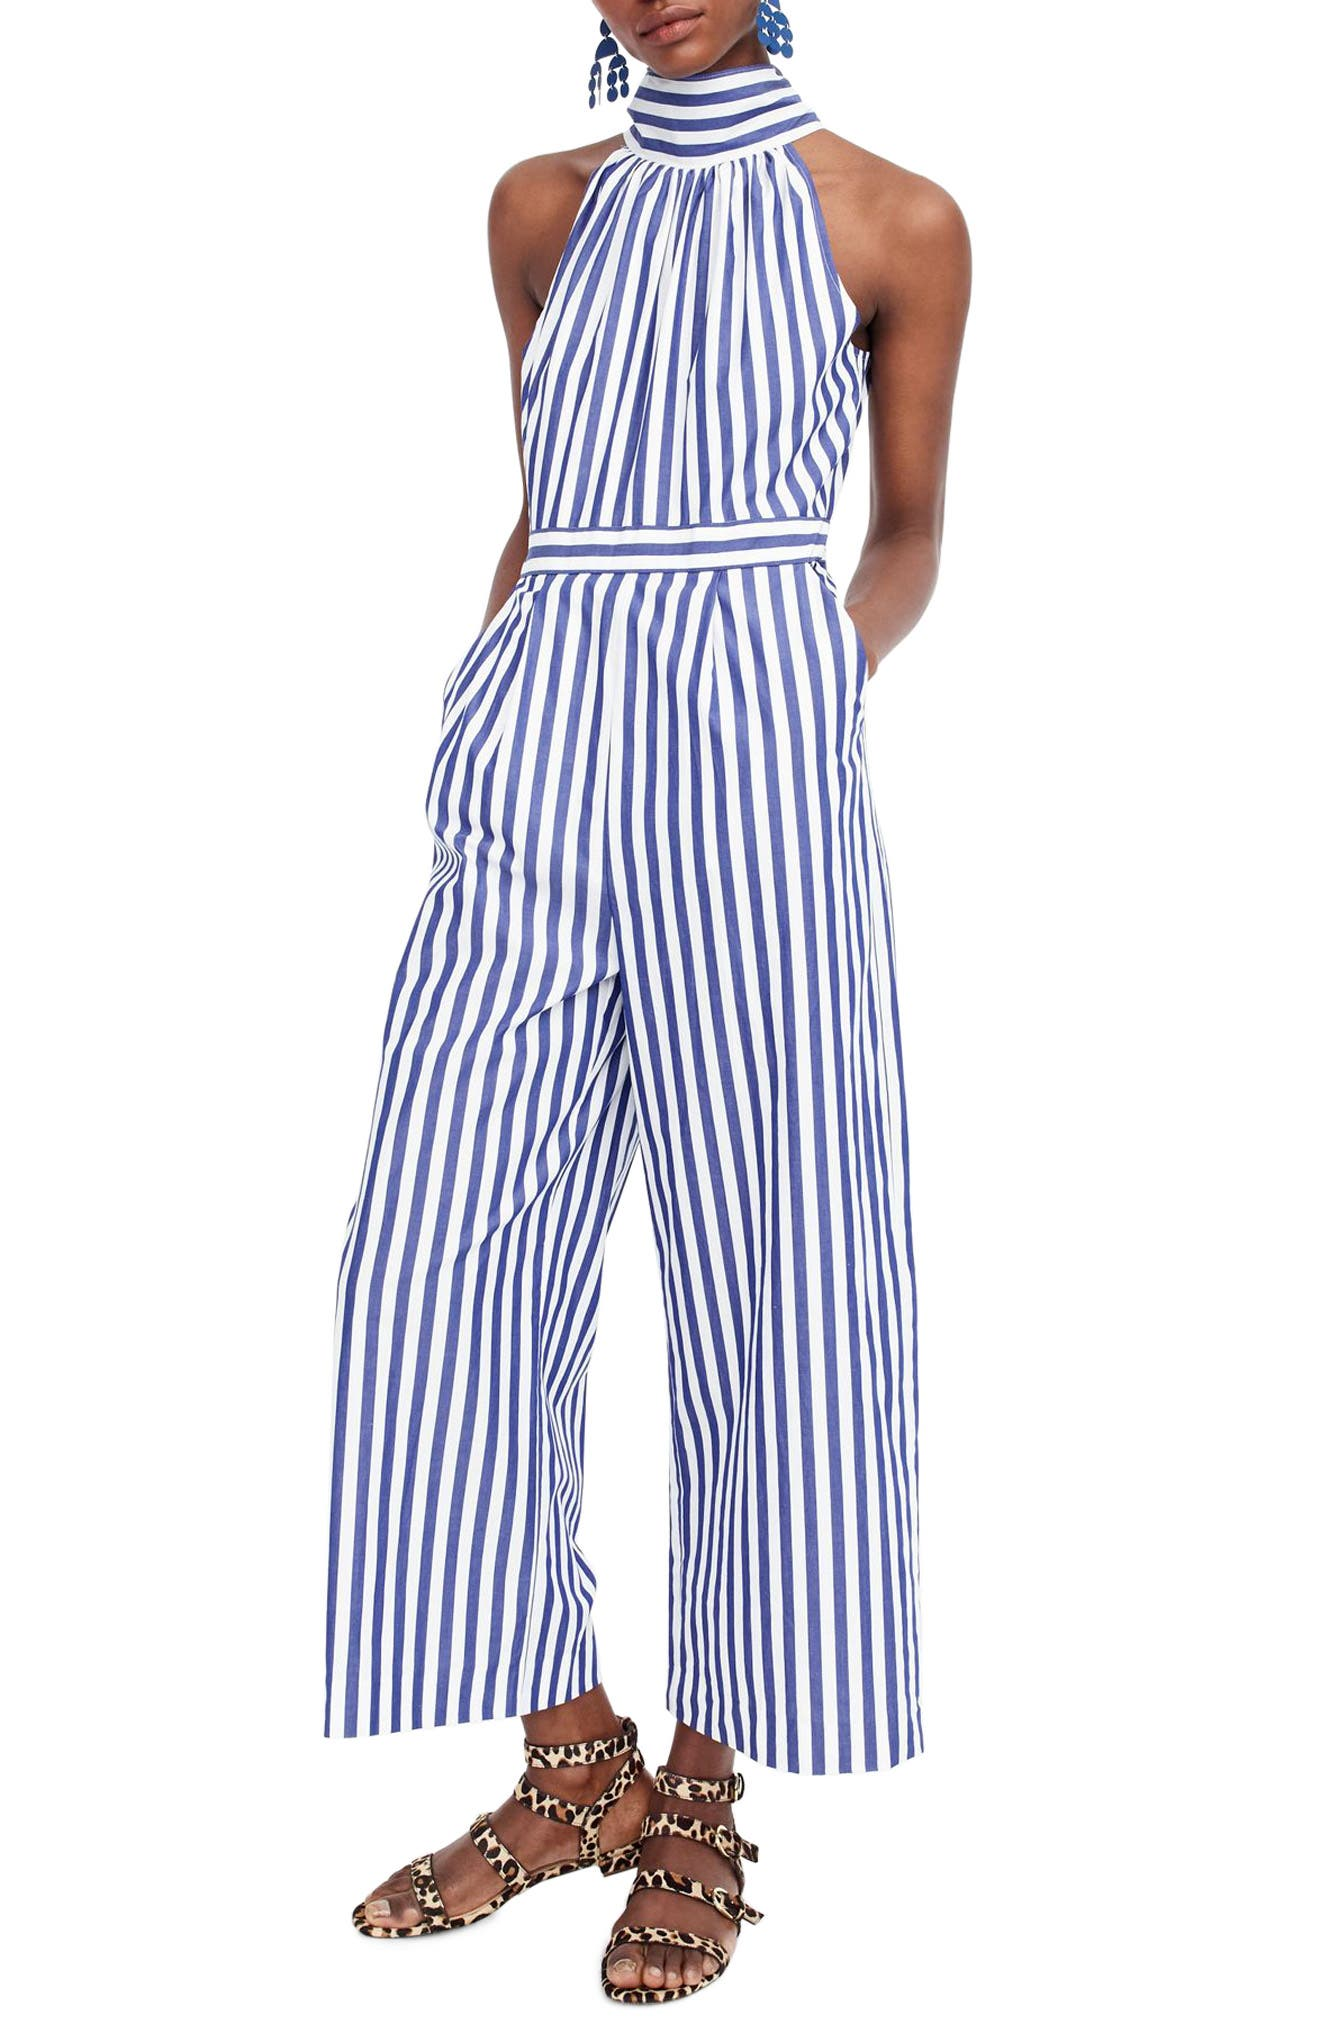 J.Crew Striped Halter Jumpsuit,                             Main thumbnail 1, color,                             Tushar Stripe Lighthouse